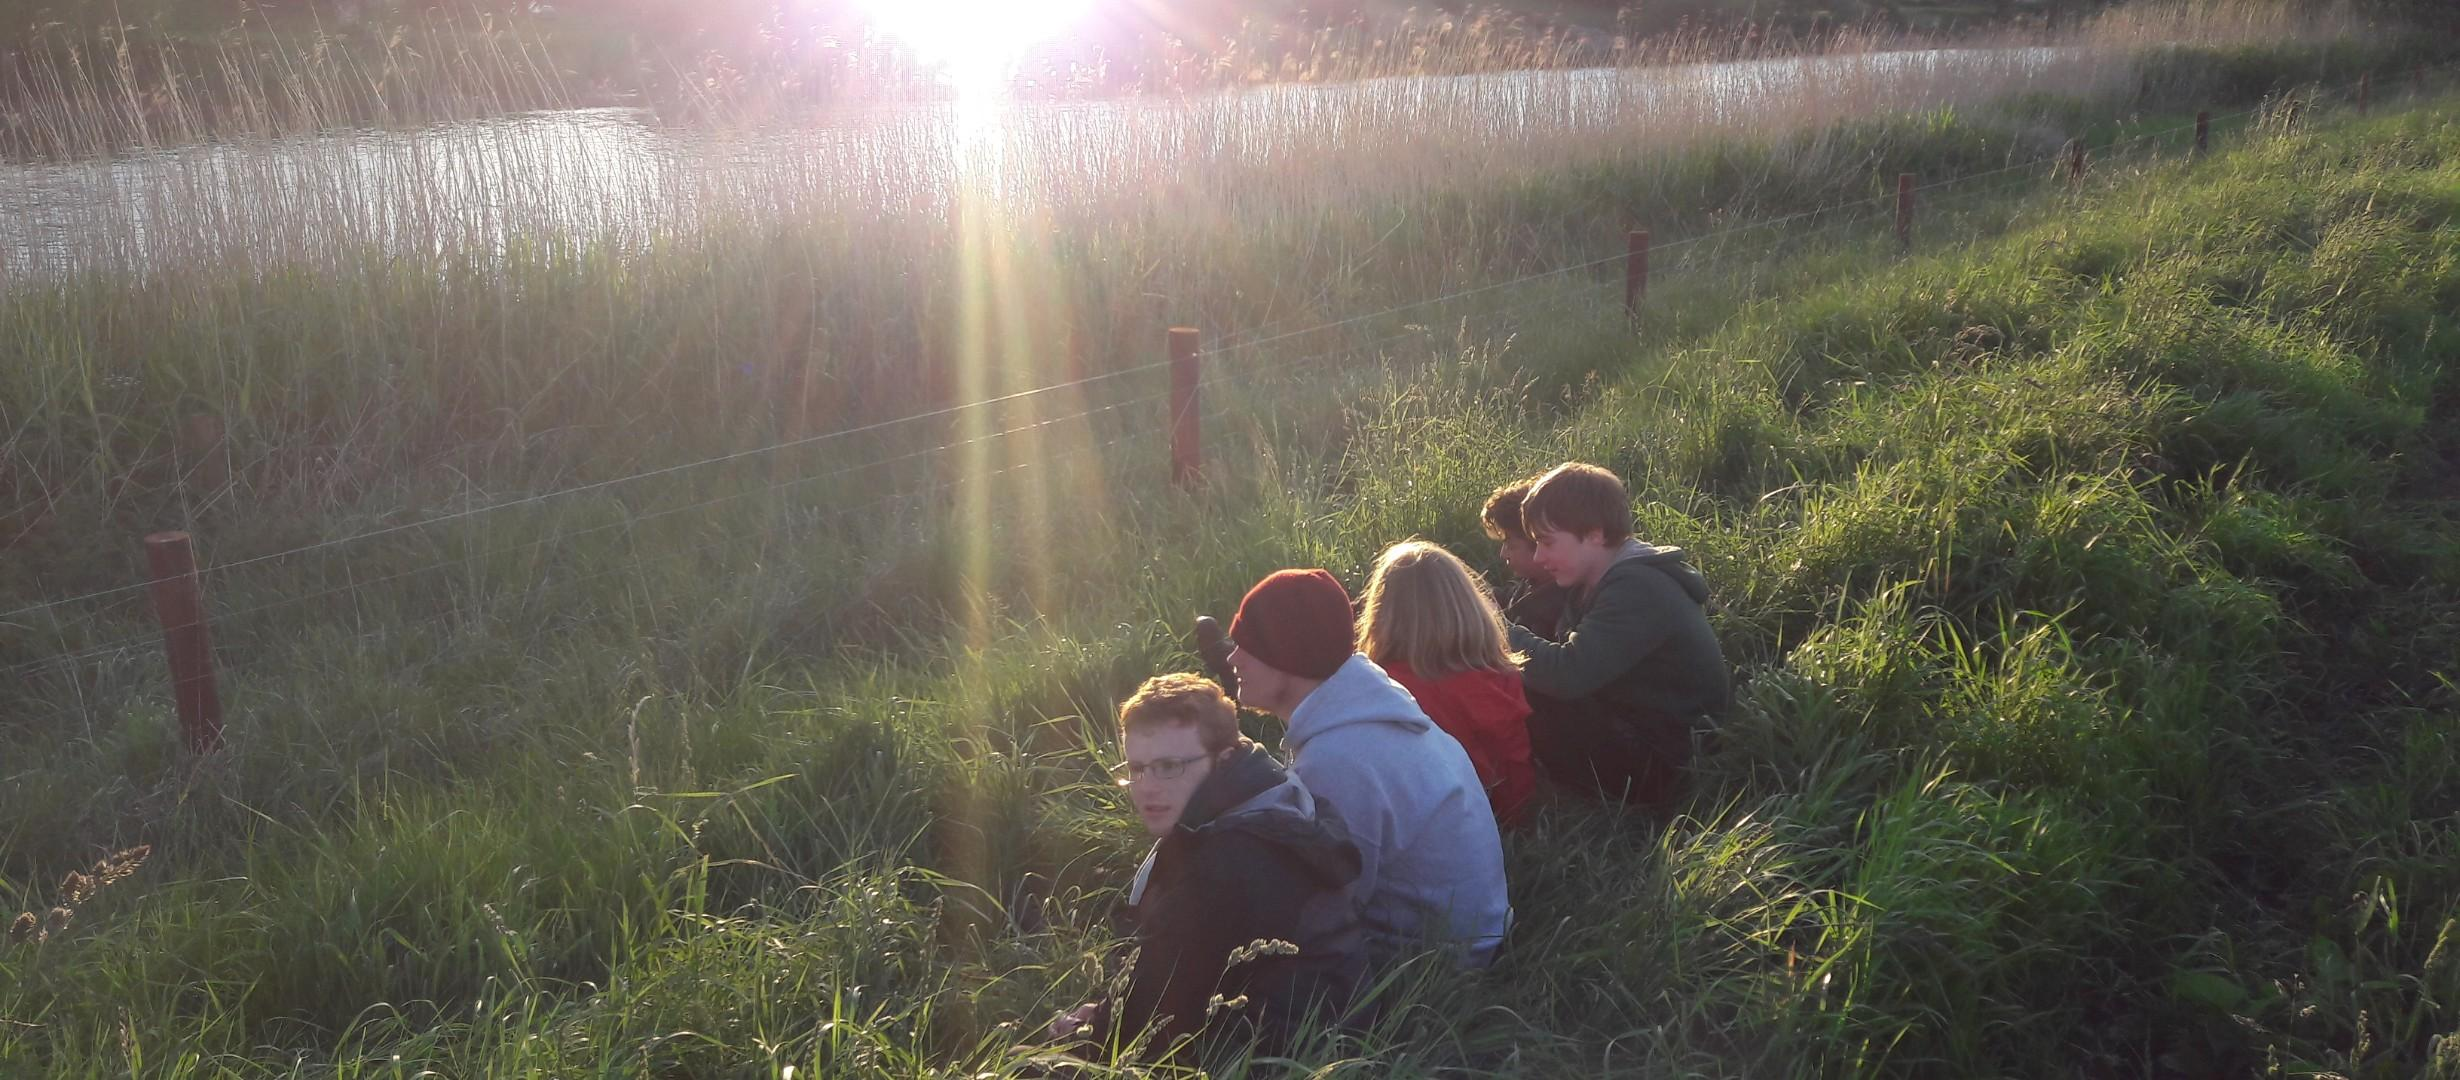 Four young people sat in a line together on ,long grass in the foreground, overlooking a river reflecting a low sun in the background